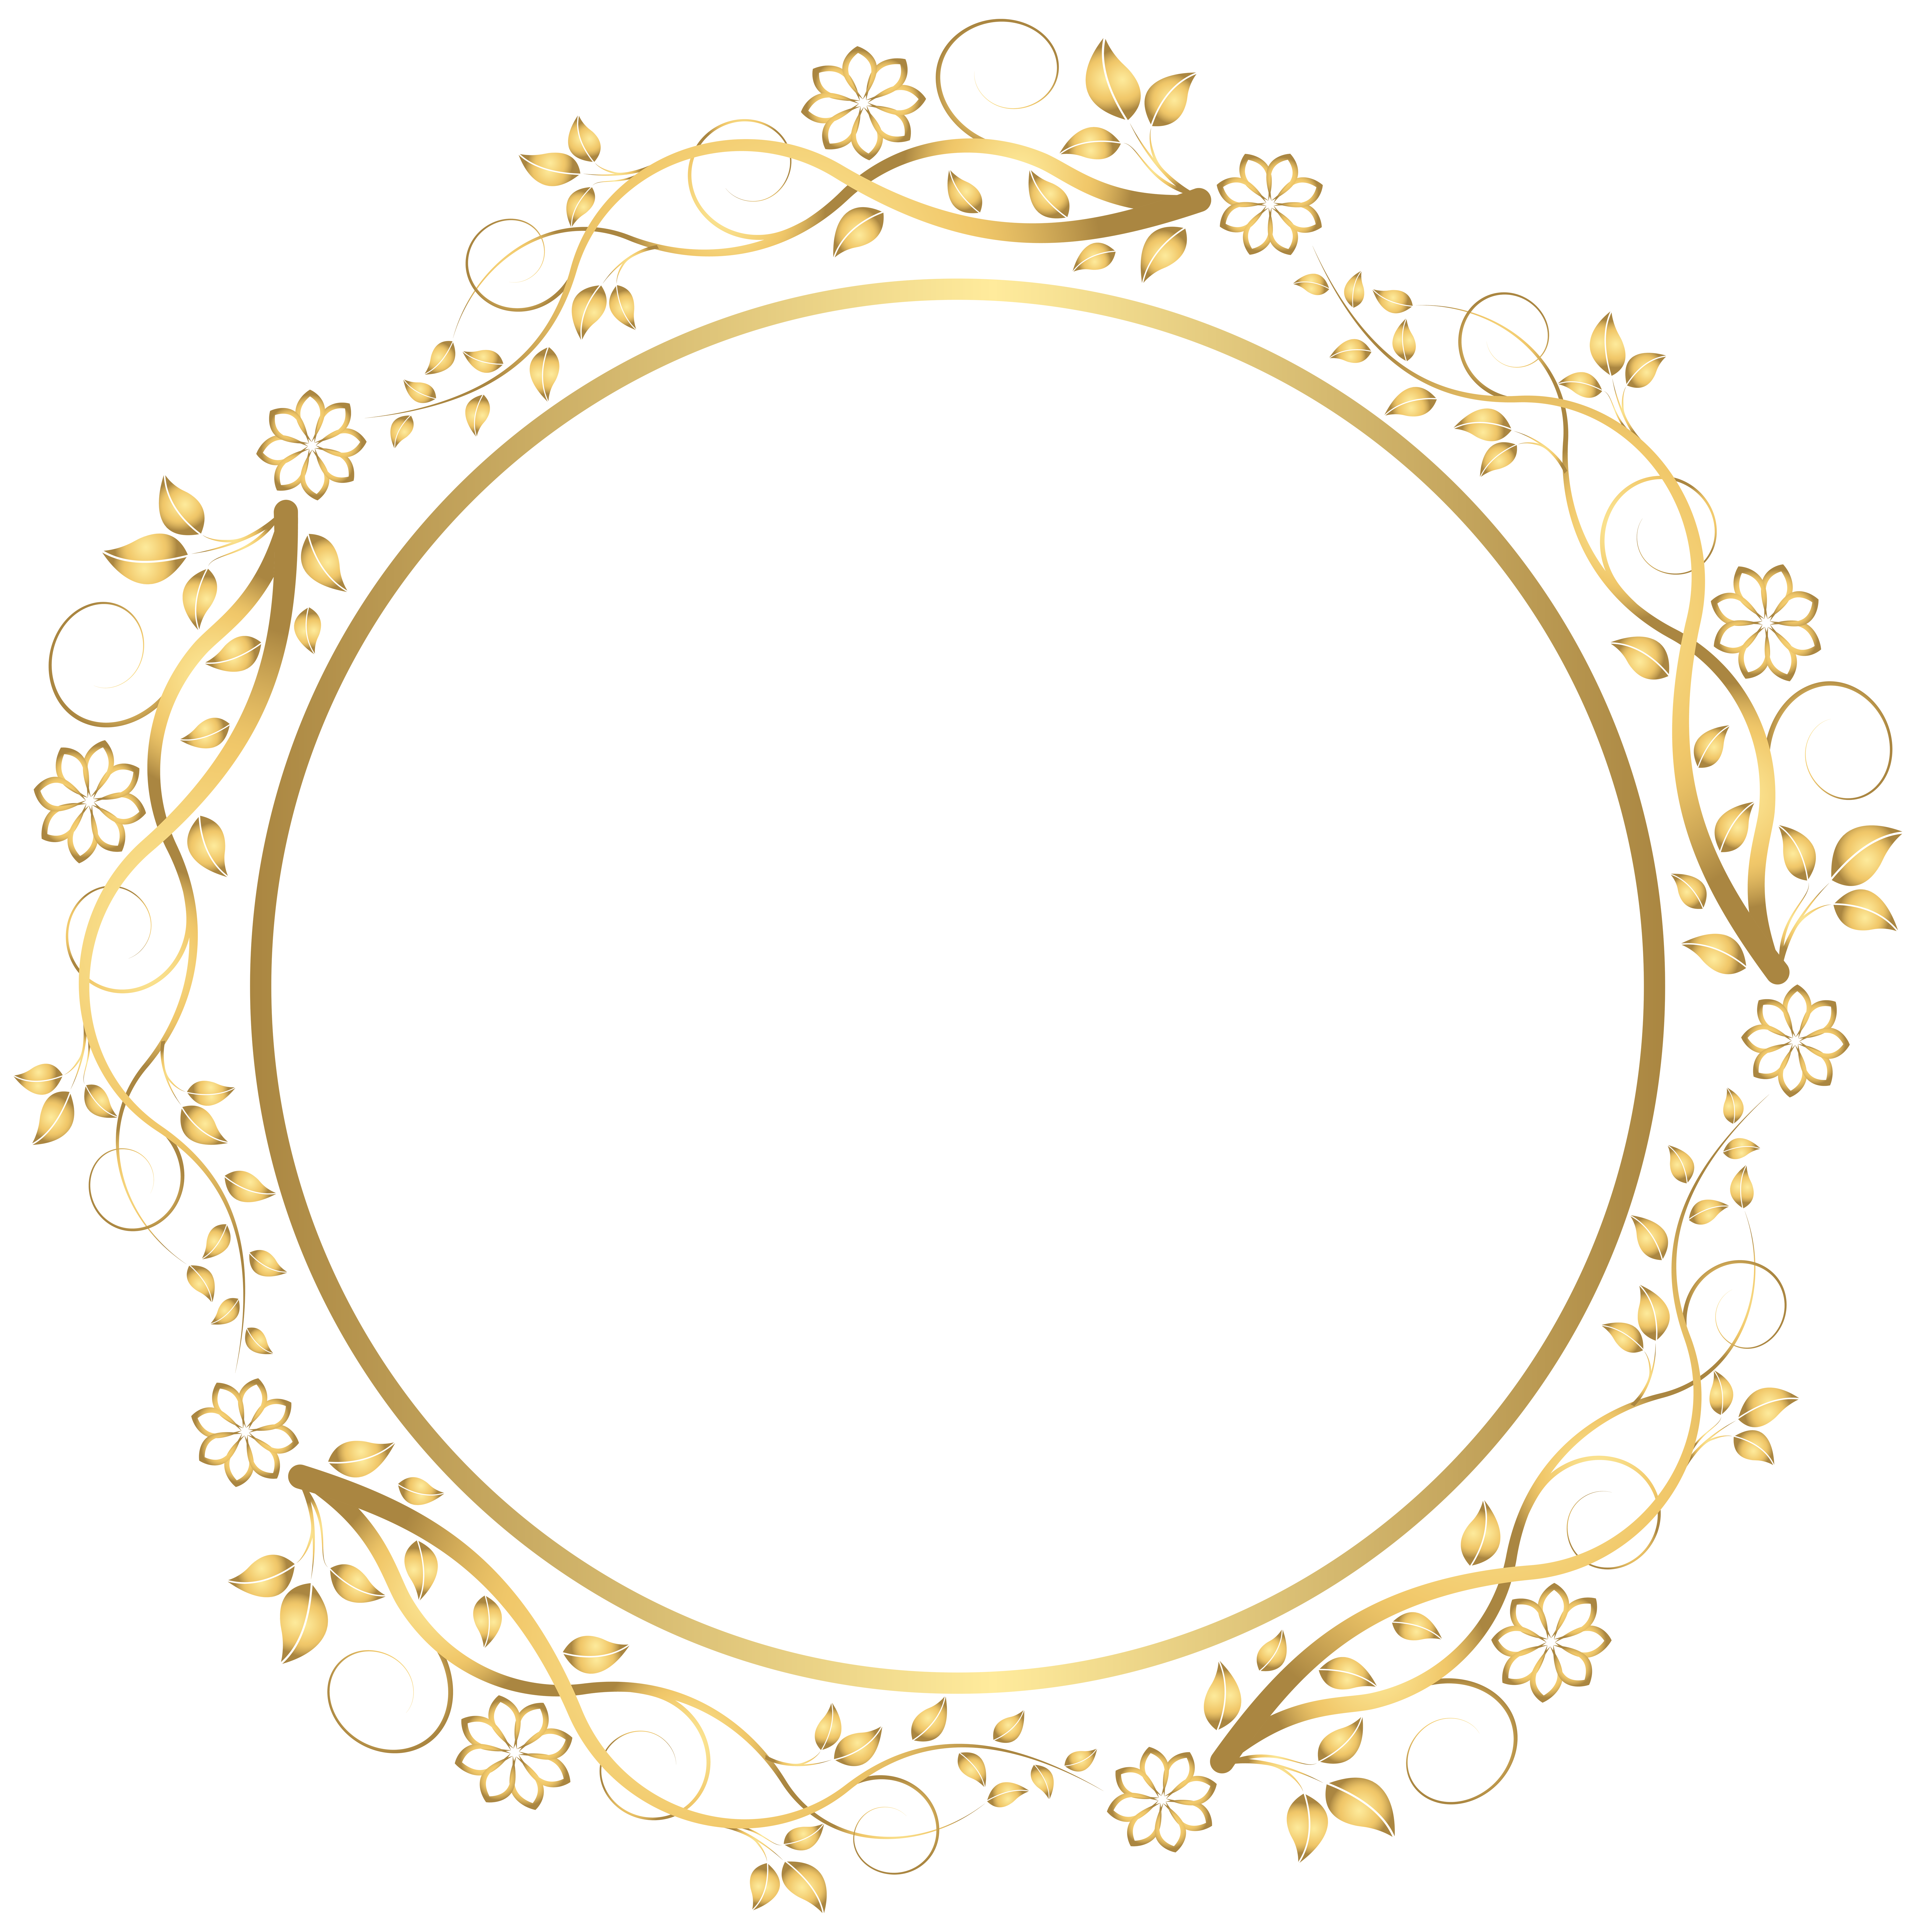 Floral circle png. Gold round border transparent